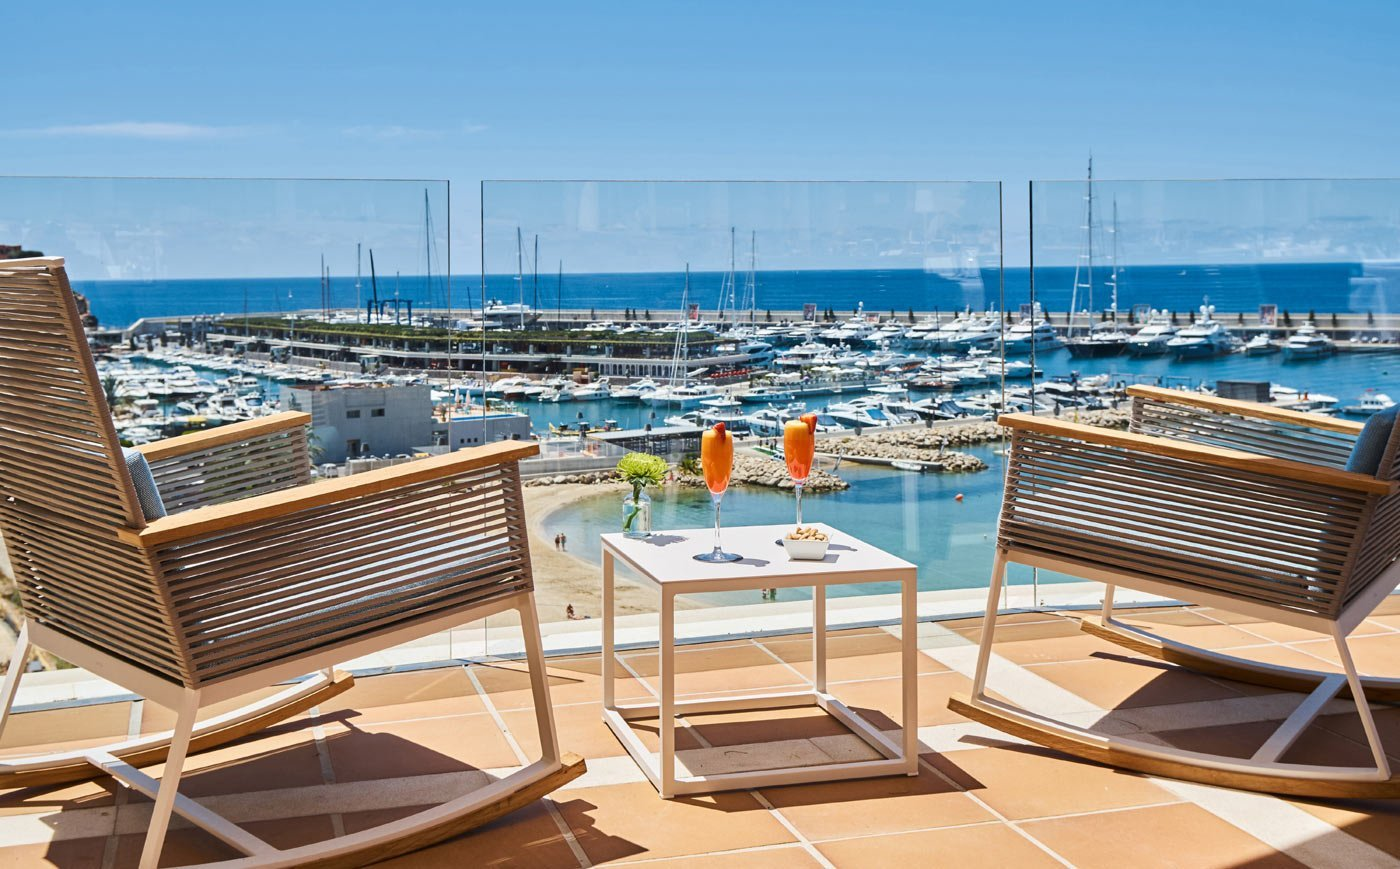 Sip a cocktail at Pure Salt Port Adriano - Luxury Hotel - MallorcanTonic deals